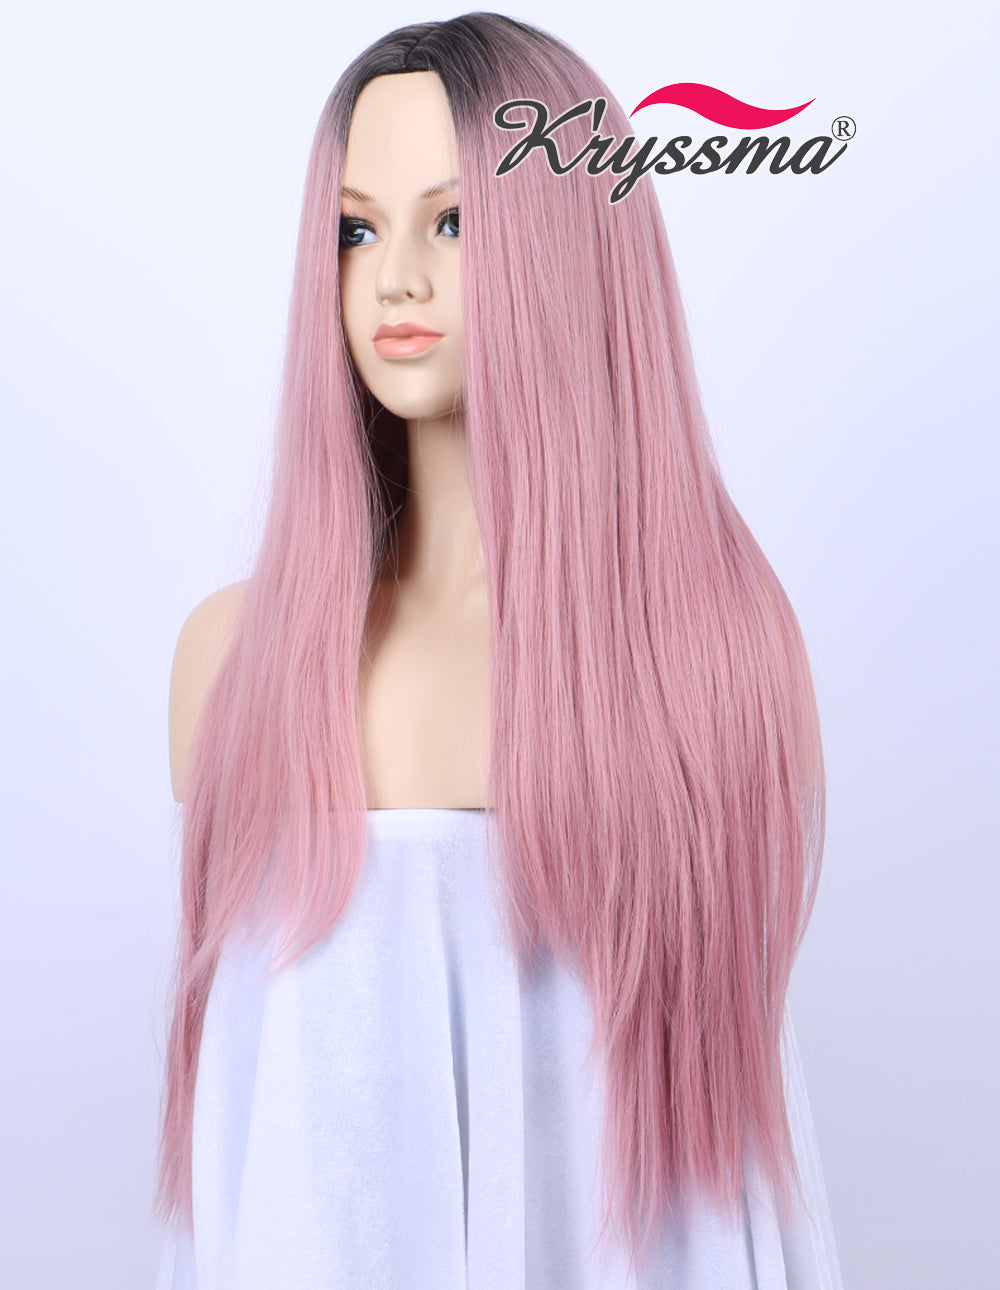 ... K ryssma Ombre Sweet Baby Pink Dark Roots Glueless Synthetic Wigs For  Women Long Straight ... 1739e6484d